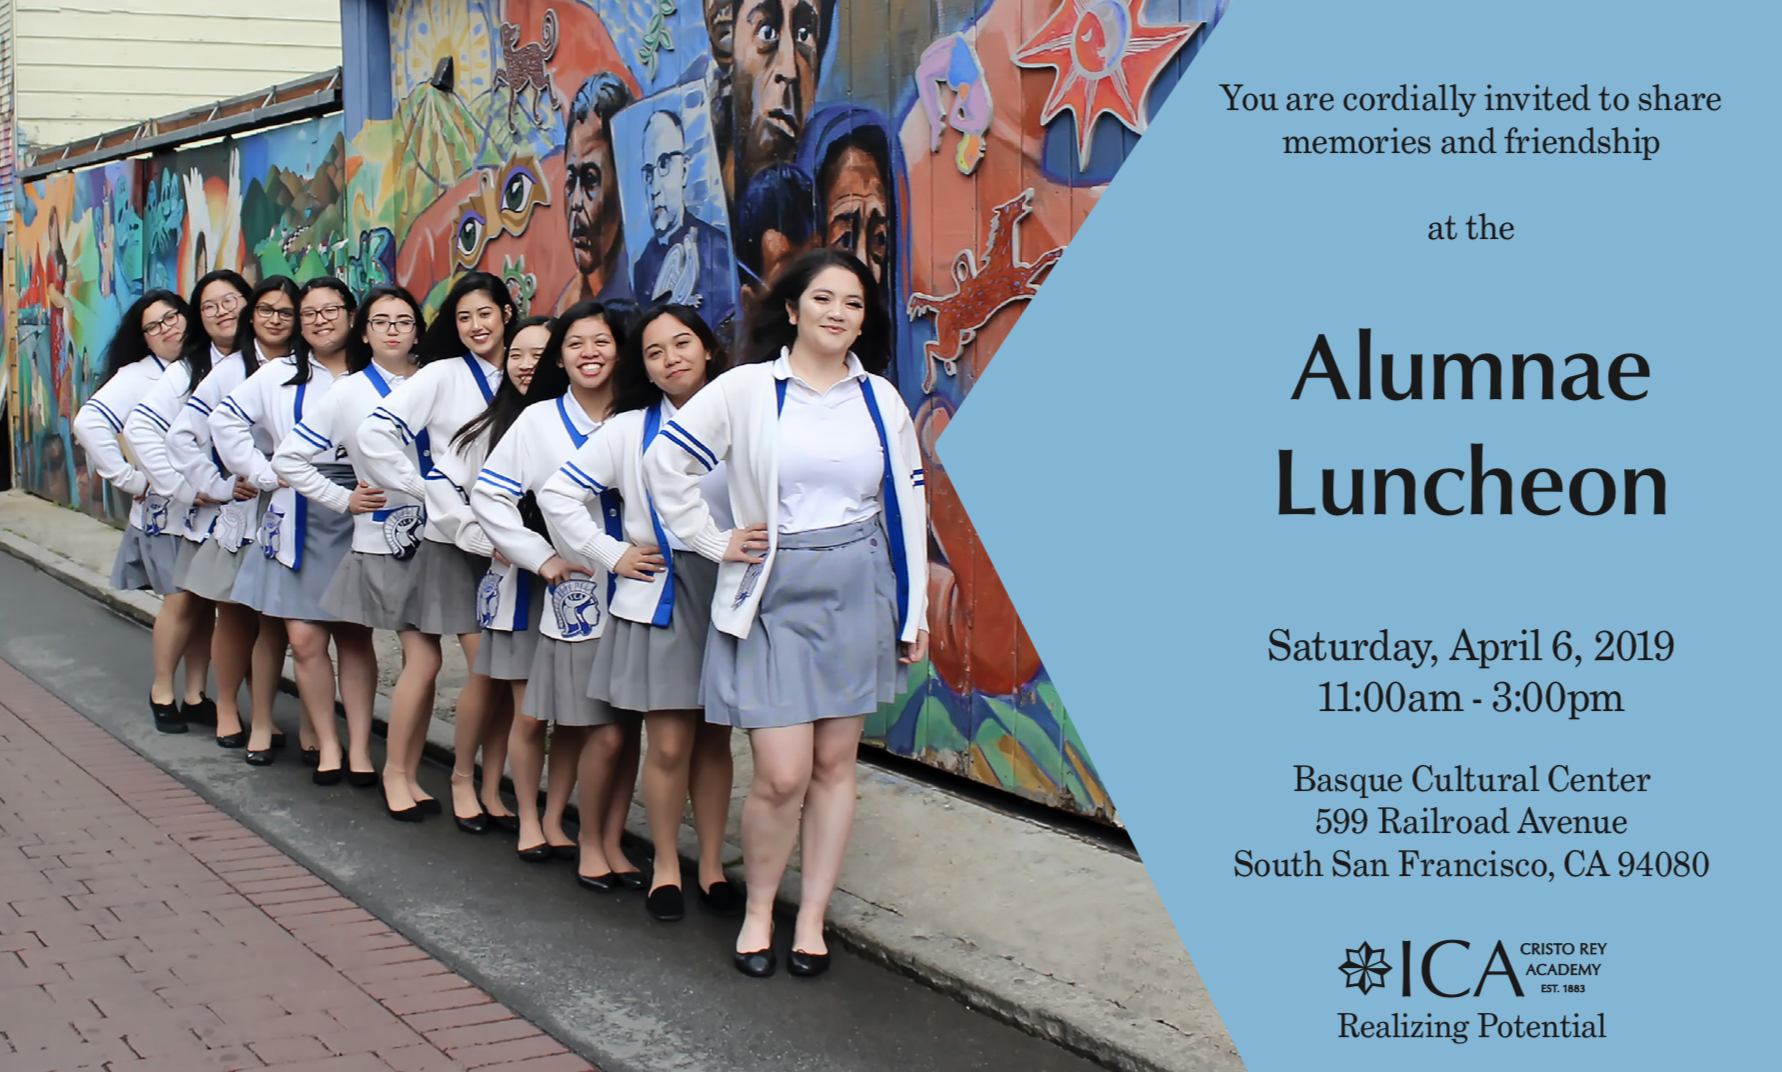 ad for upcoming Alumnae lunch